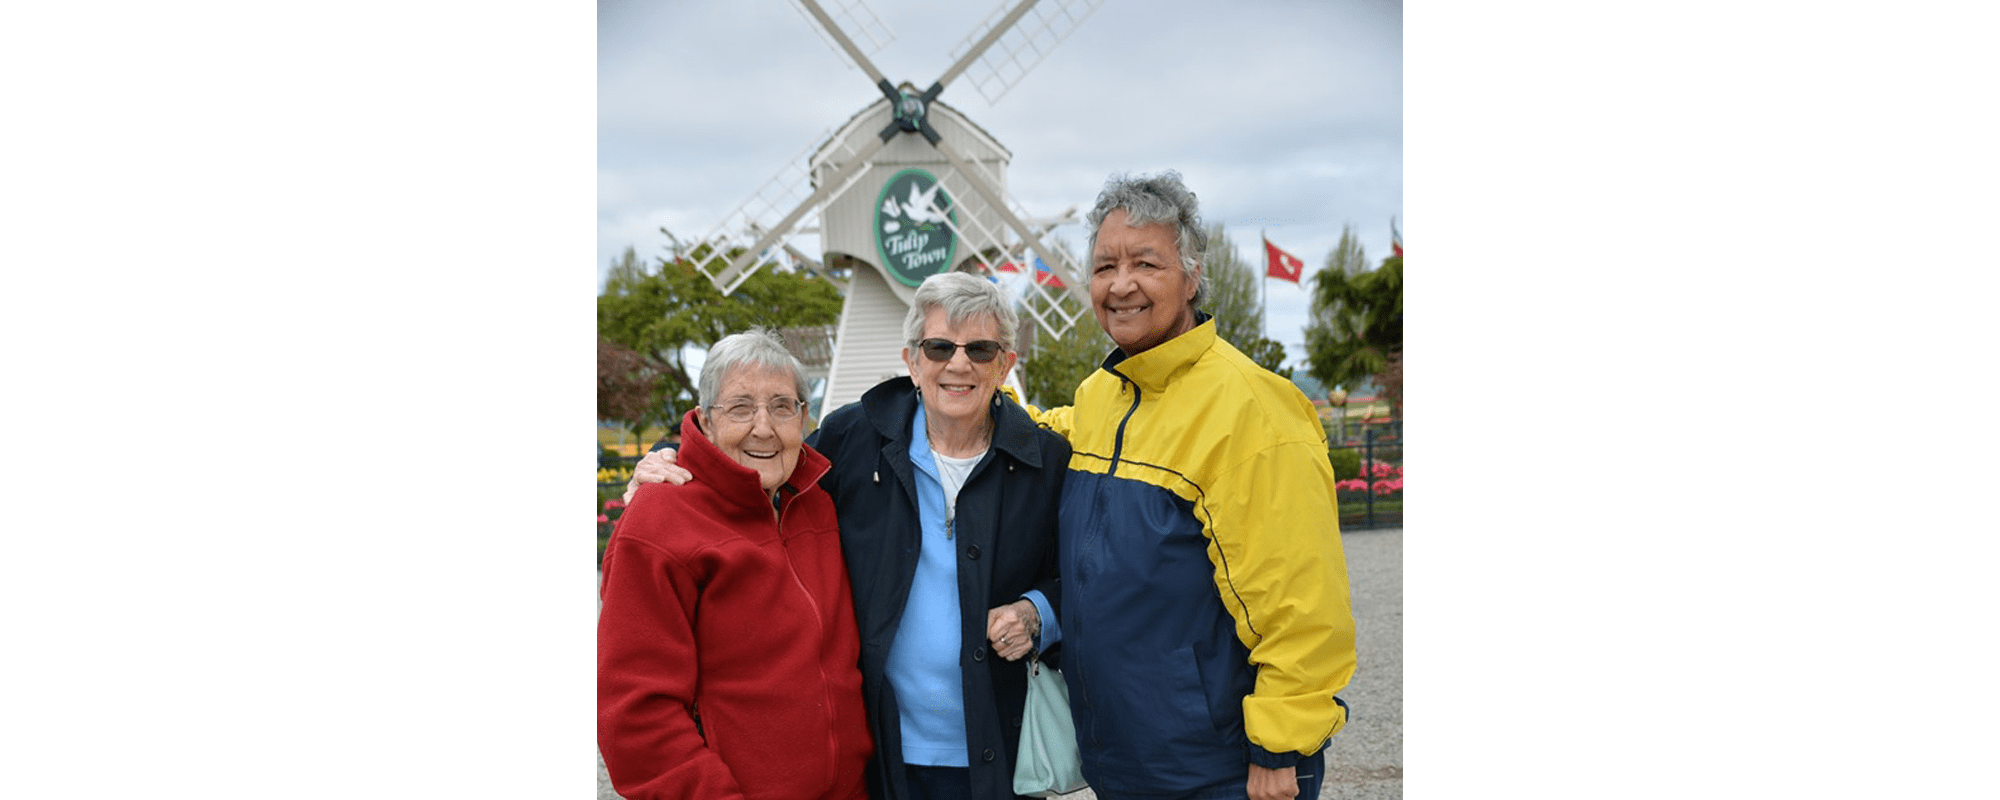 Group photo in front of Tulip Town at Mountlake Terrace Plaza in Mountlake Terrace, Washington